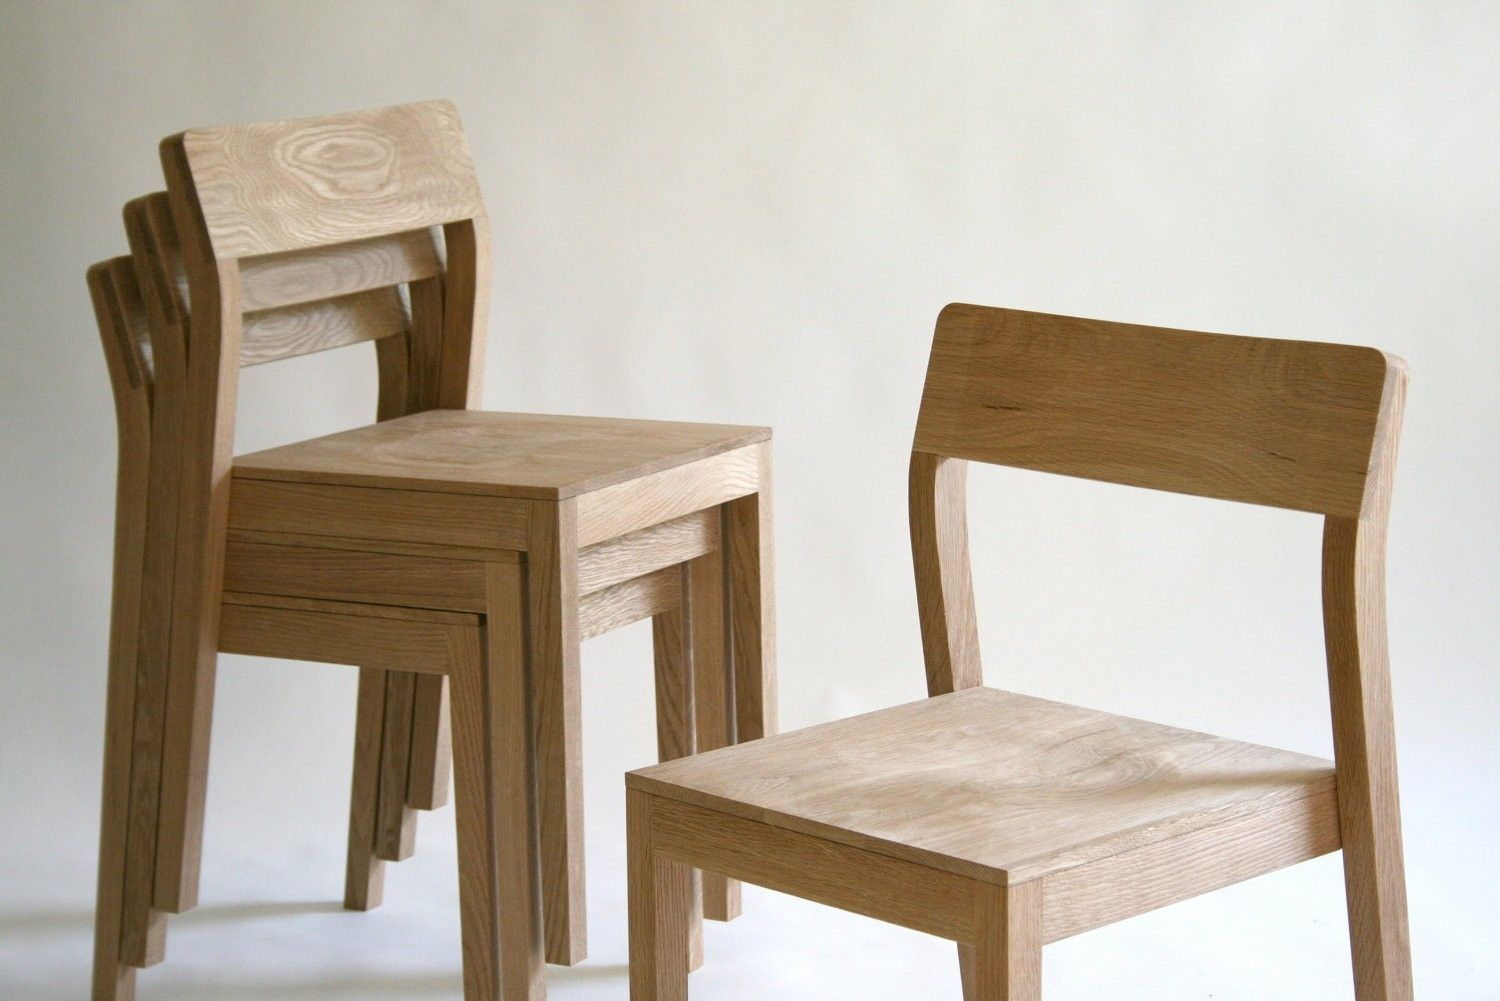 Custom Made Stackable Wood Dining Chair Wood Chair Design